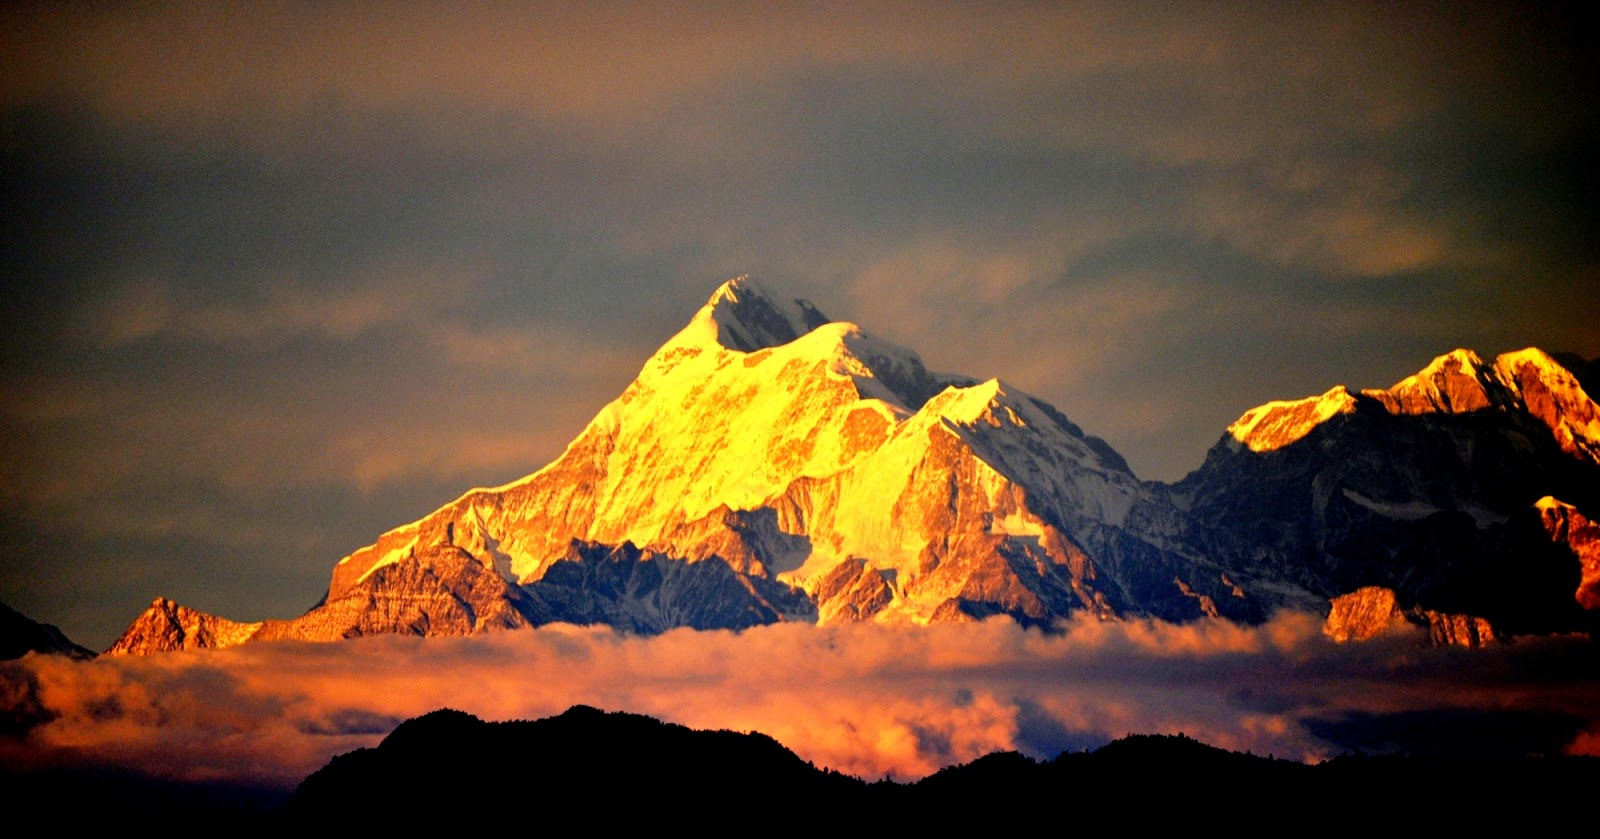 nanda devi unsolved mysteries india